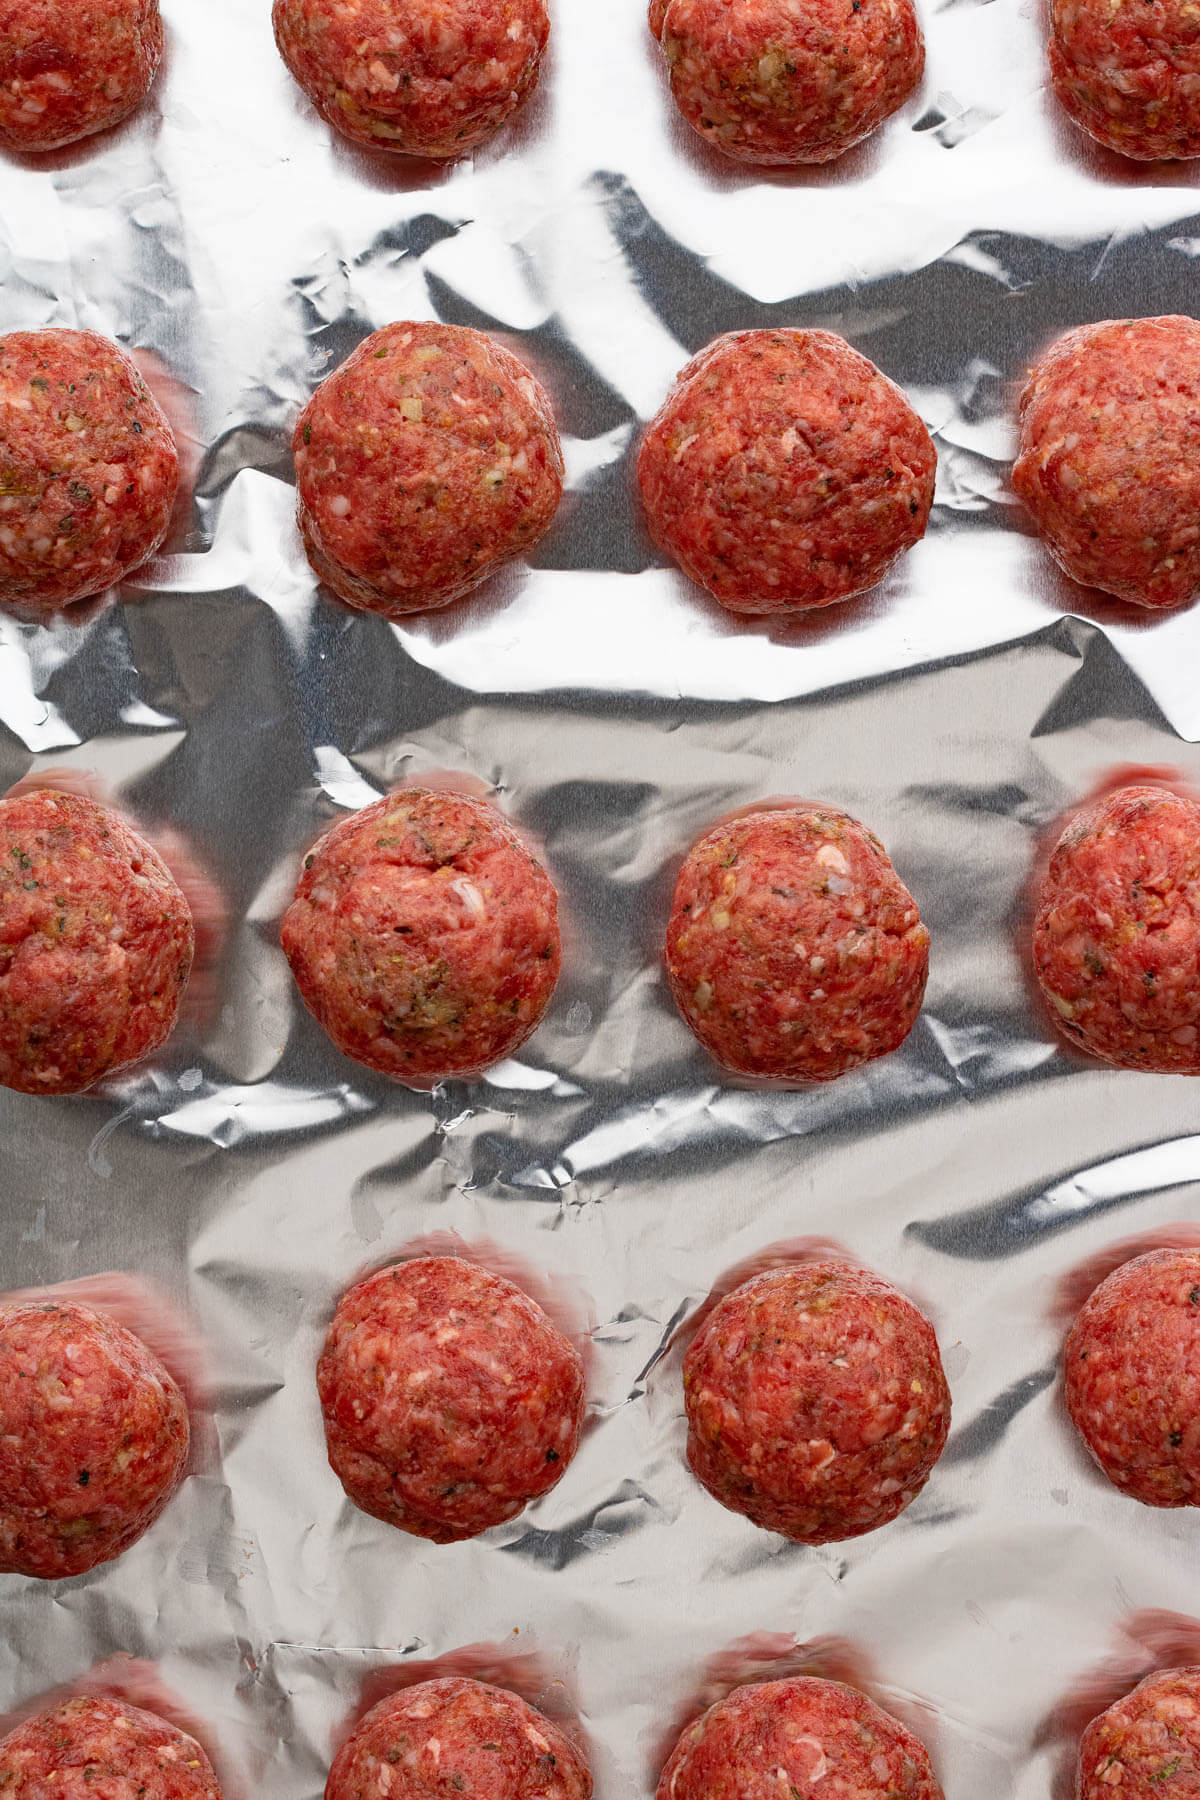 An aluminum foil covered tray of unbaked meatballs.